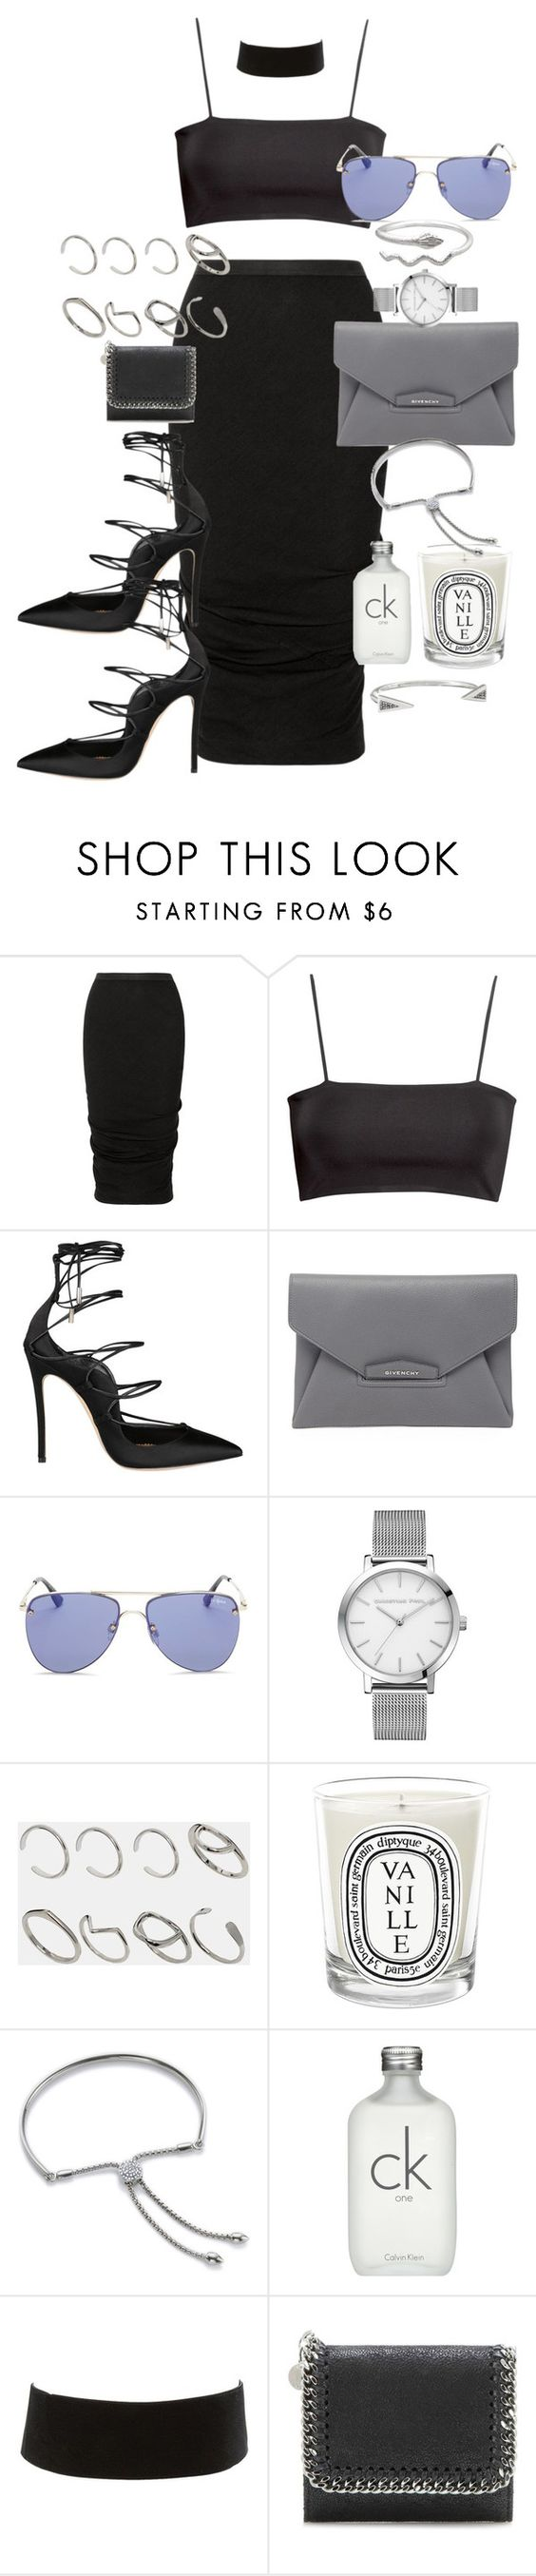 """Anything can happen"" by marissa-91 ❤ liked on Polyvore featuring Rick Owens, H&M, Dsquared2, Givenchy, Le Specs, ASOS, Diptyque, Monica Vinader, Calvin Klein and Charlotte Russe"